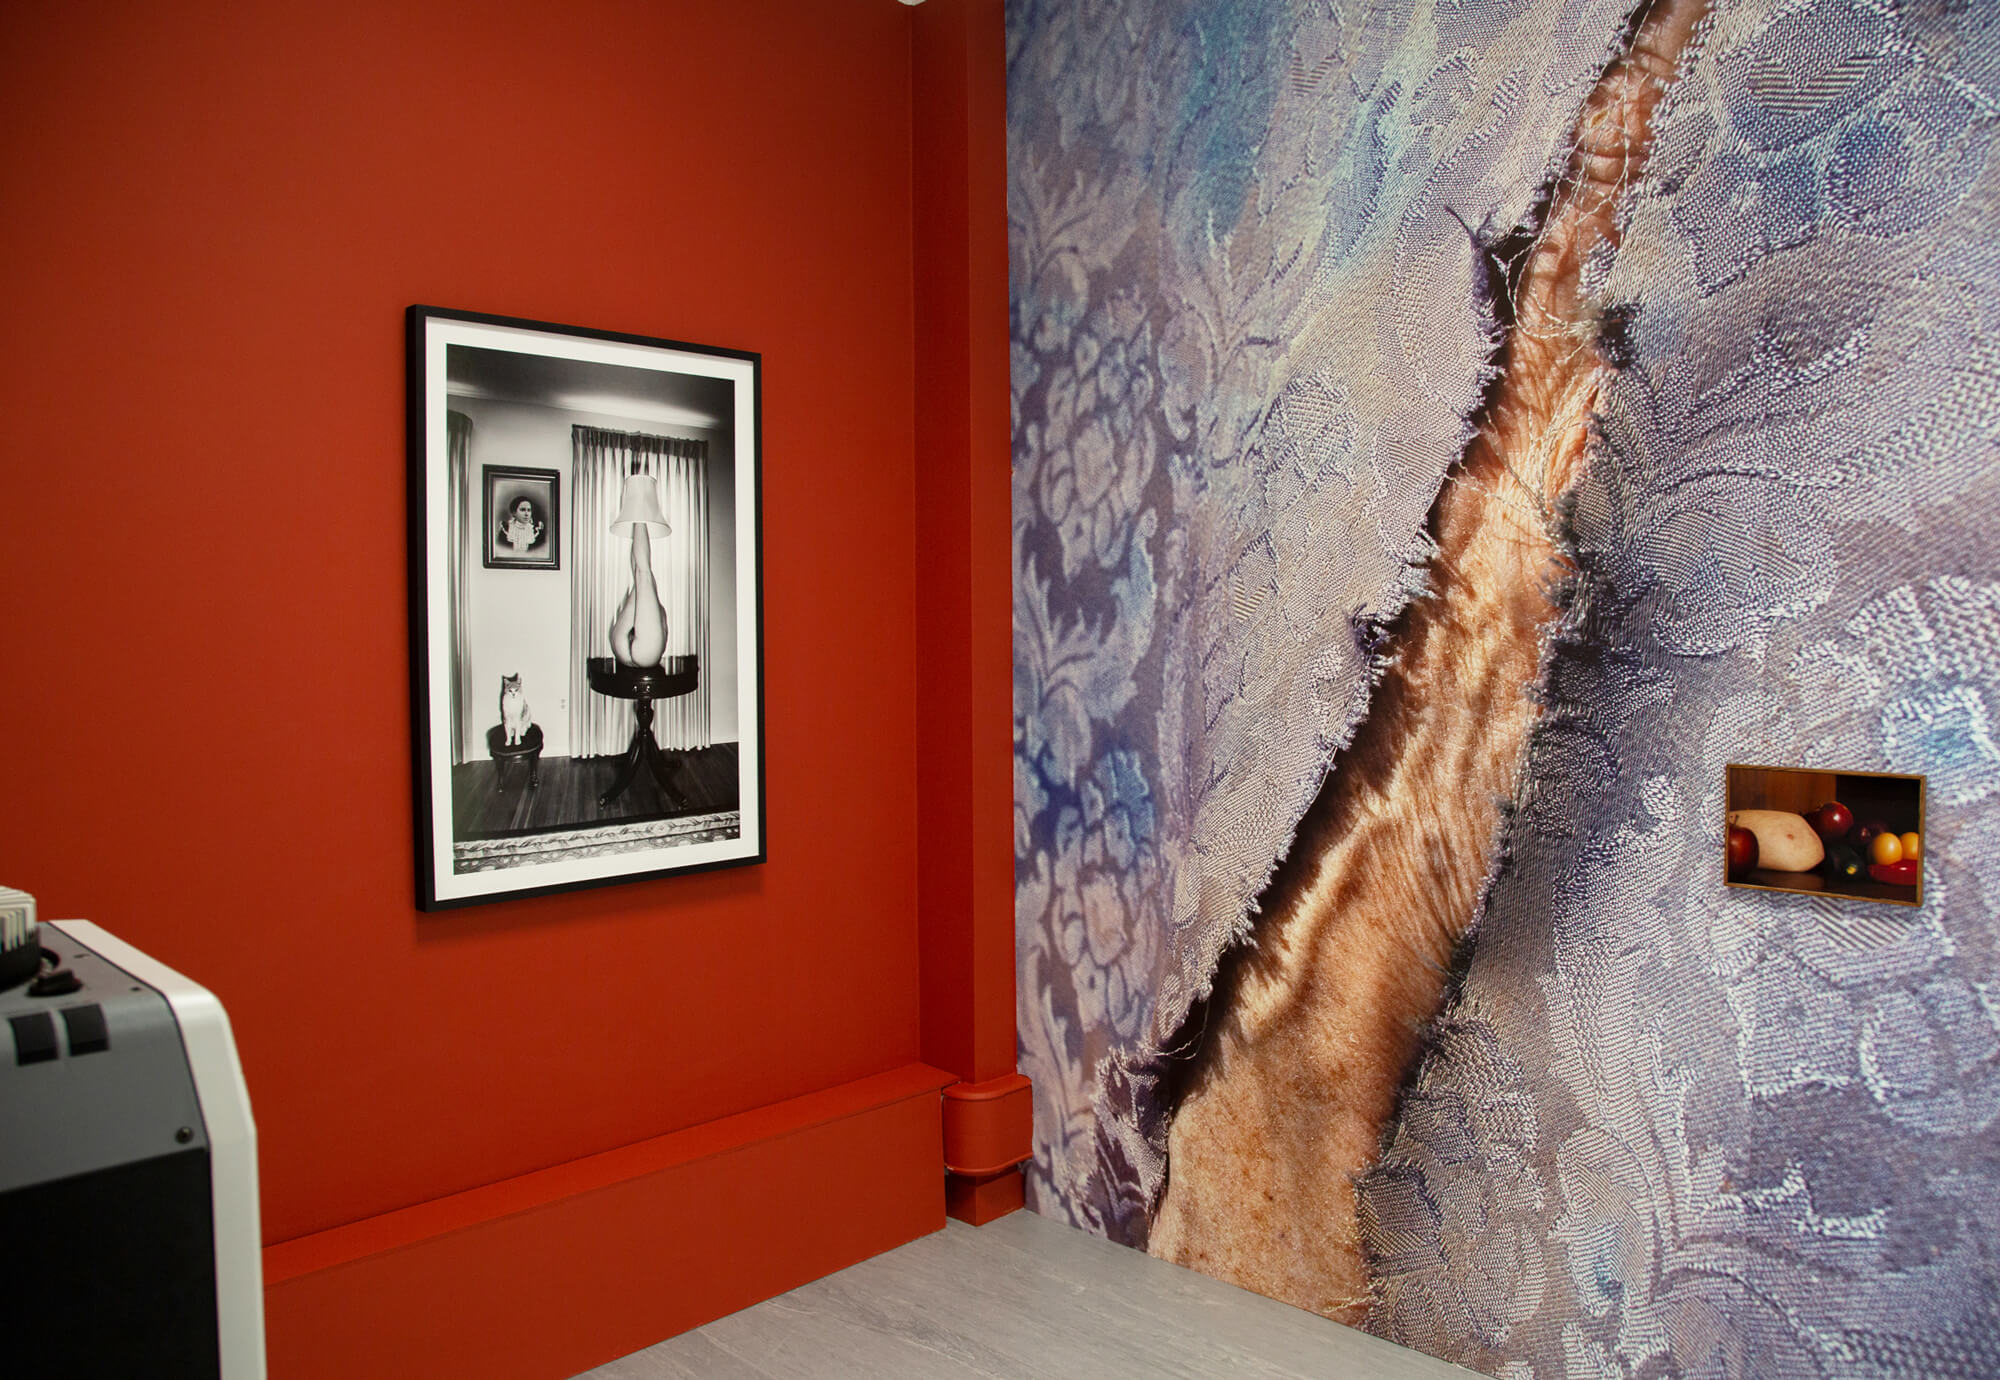 Loreal Prystaj install shot, photo on red wall the south west collective